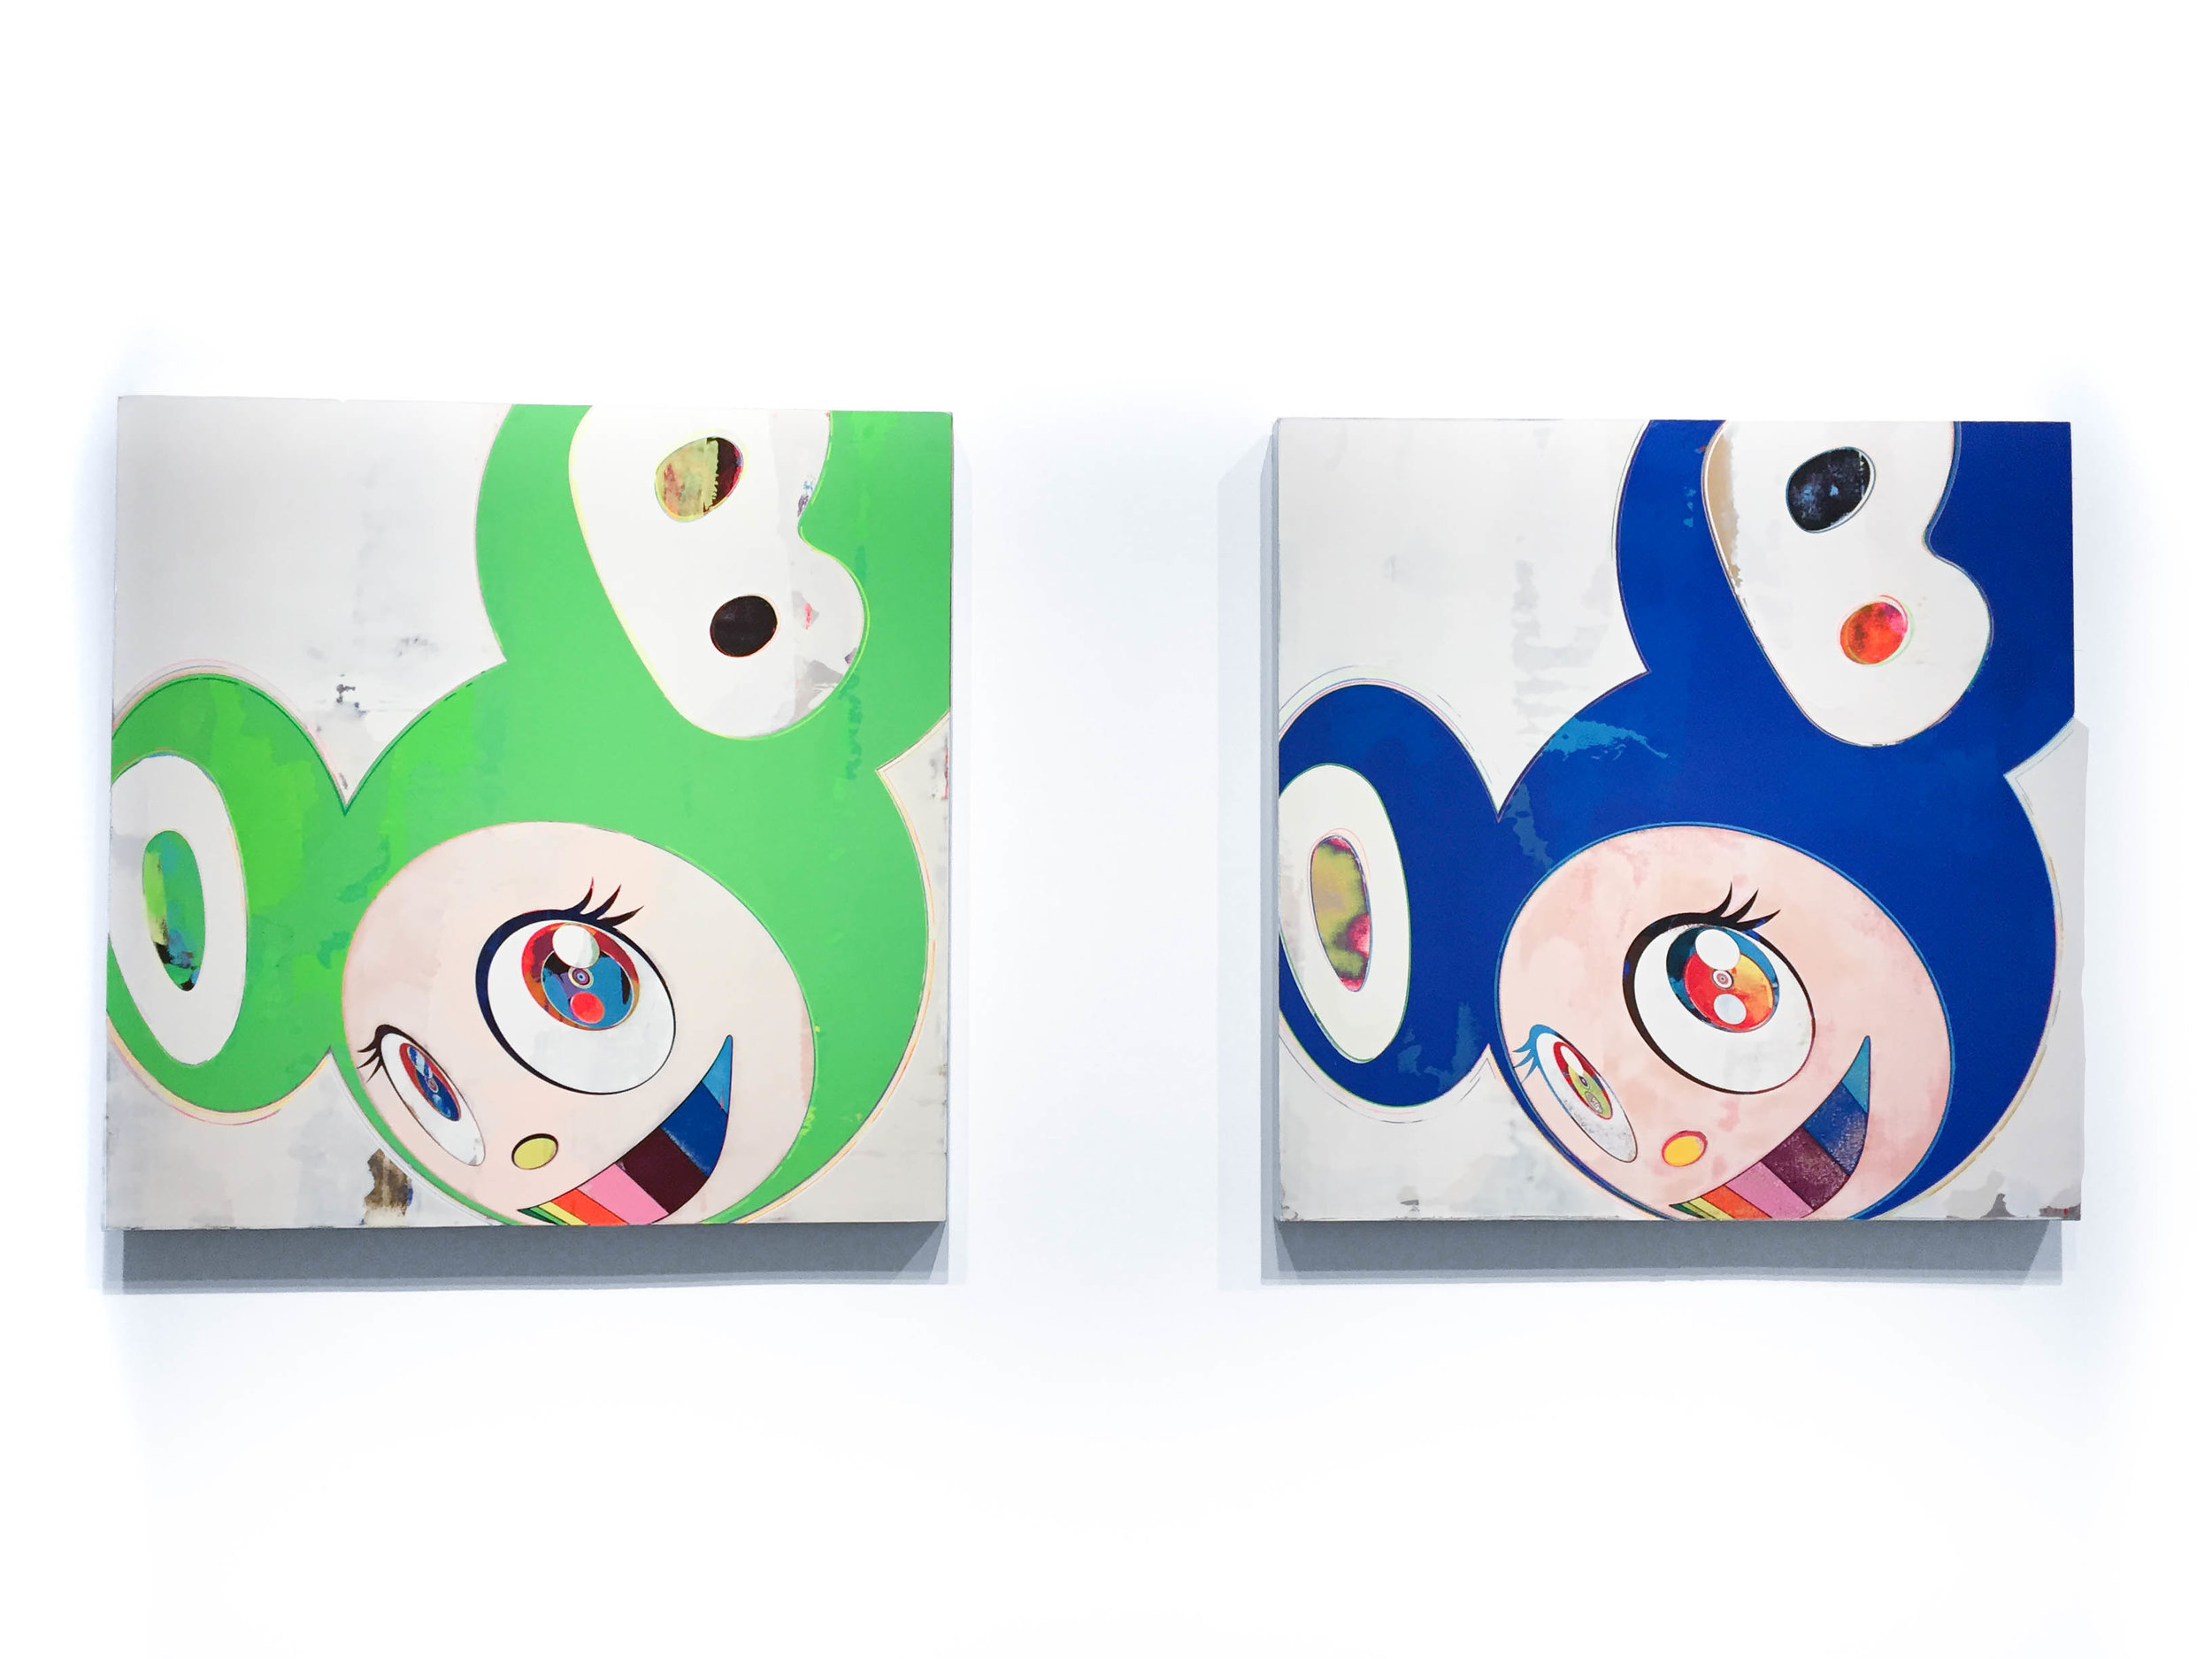 Left: Takashi Murakami,  And then, and then and then and then and then / Green Truth, 2006   Right: Takashi Murakami,  And then, and then and then and then and then / Original Blue, 2006